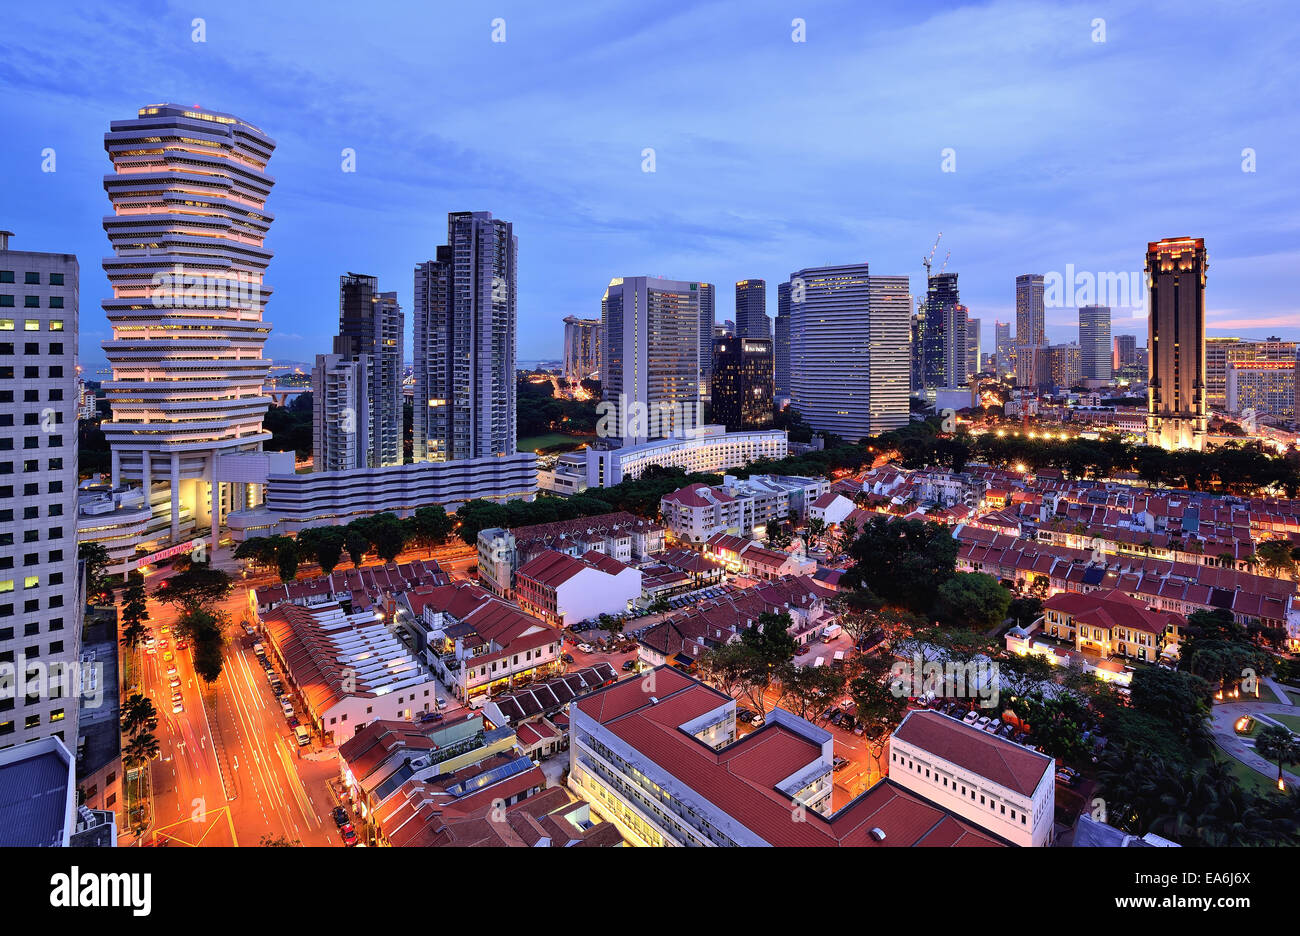 Singapore, Downtown skyline at dusk - Stock Image